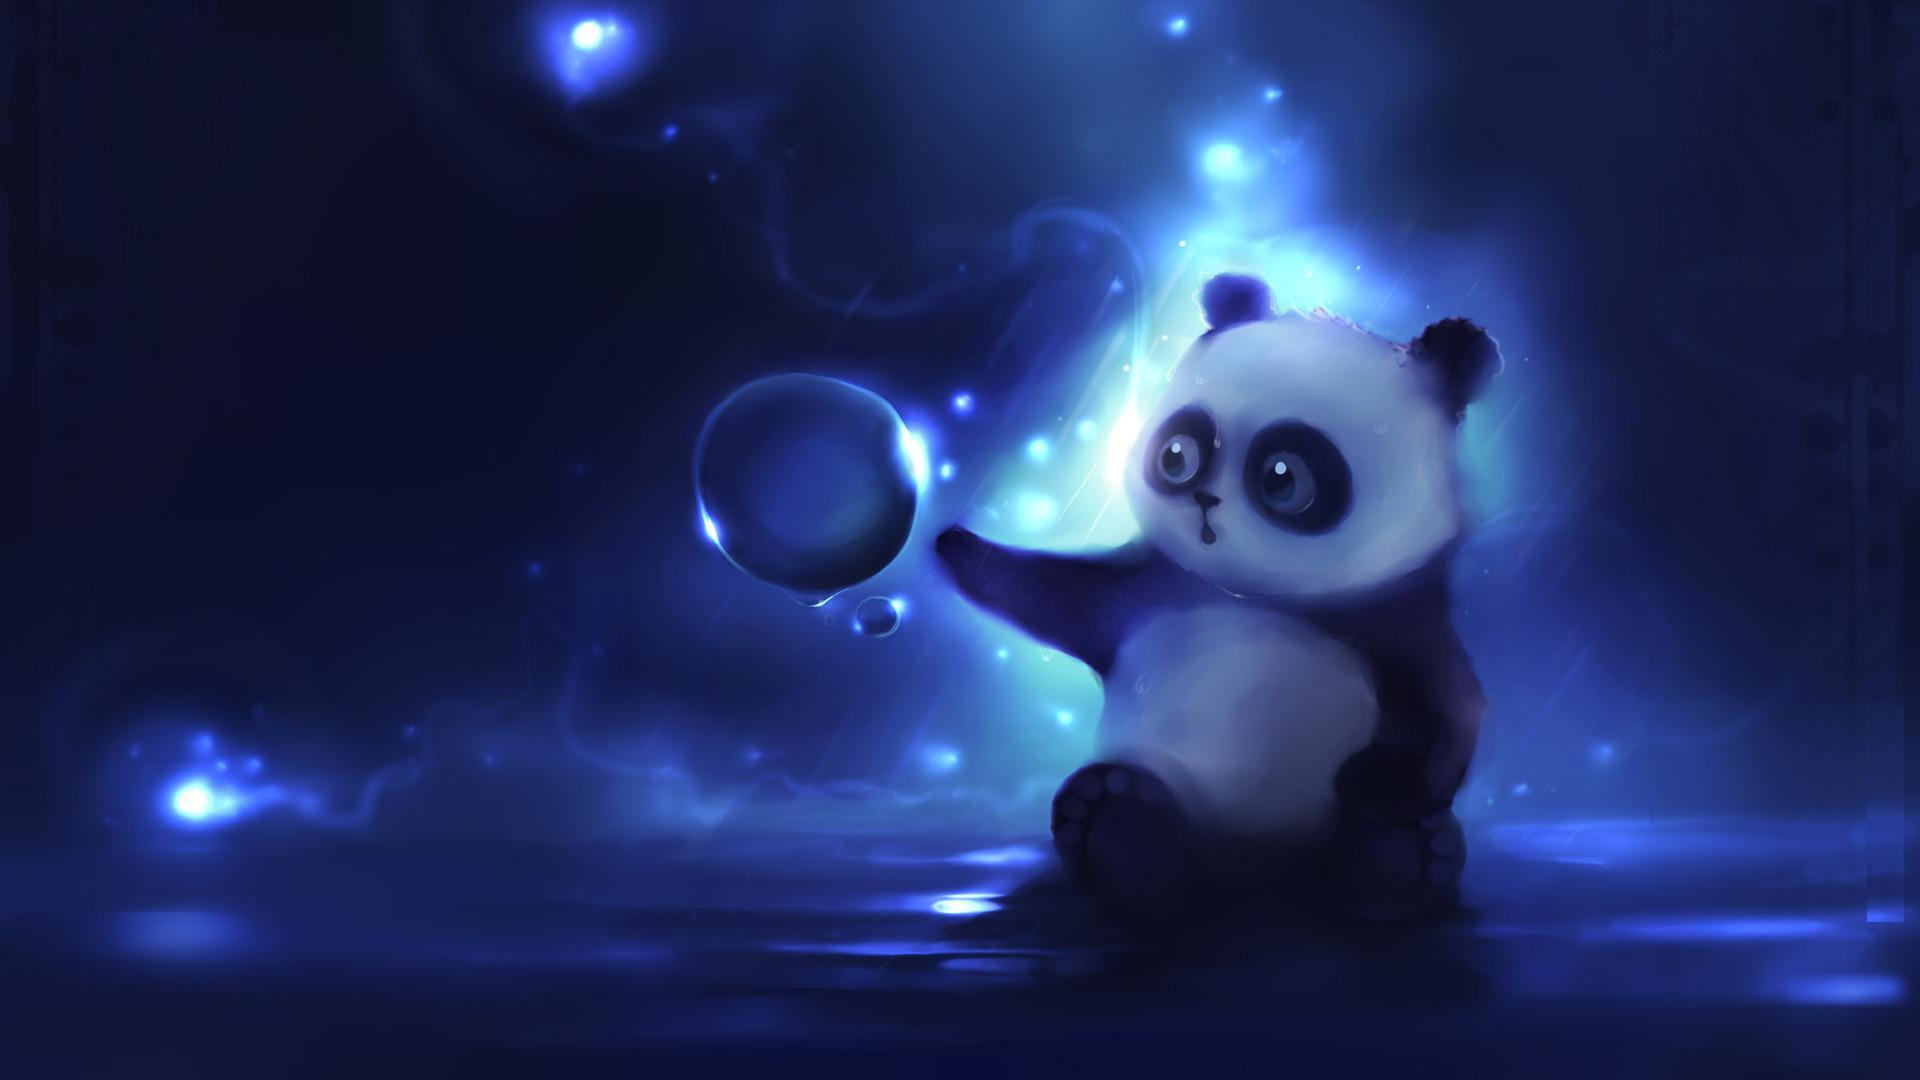 Cute Animated Moving Wallpapers For Desktop Cute animated panda 1920x1080